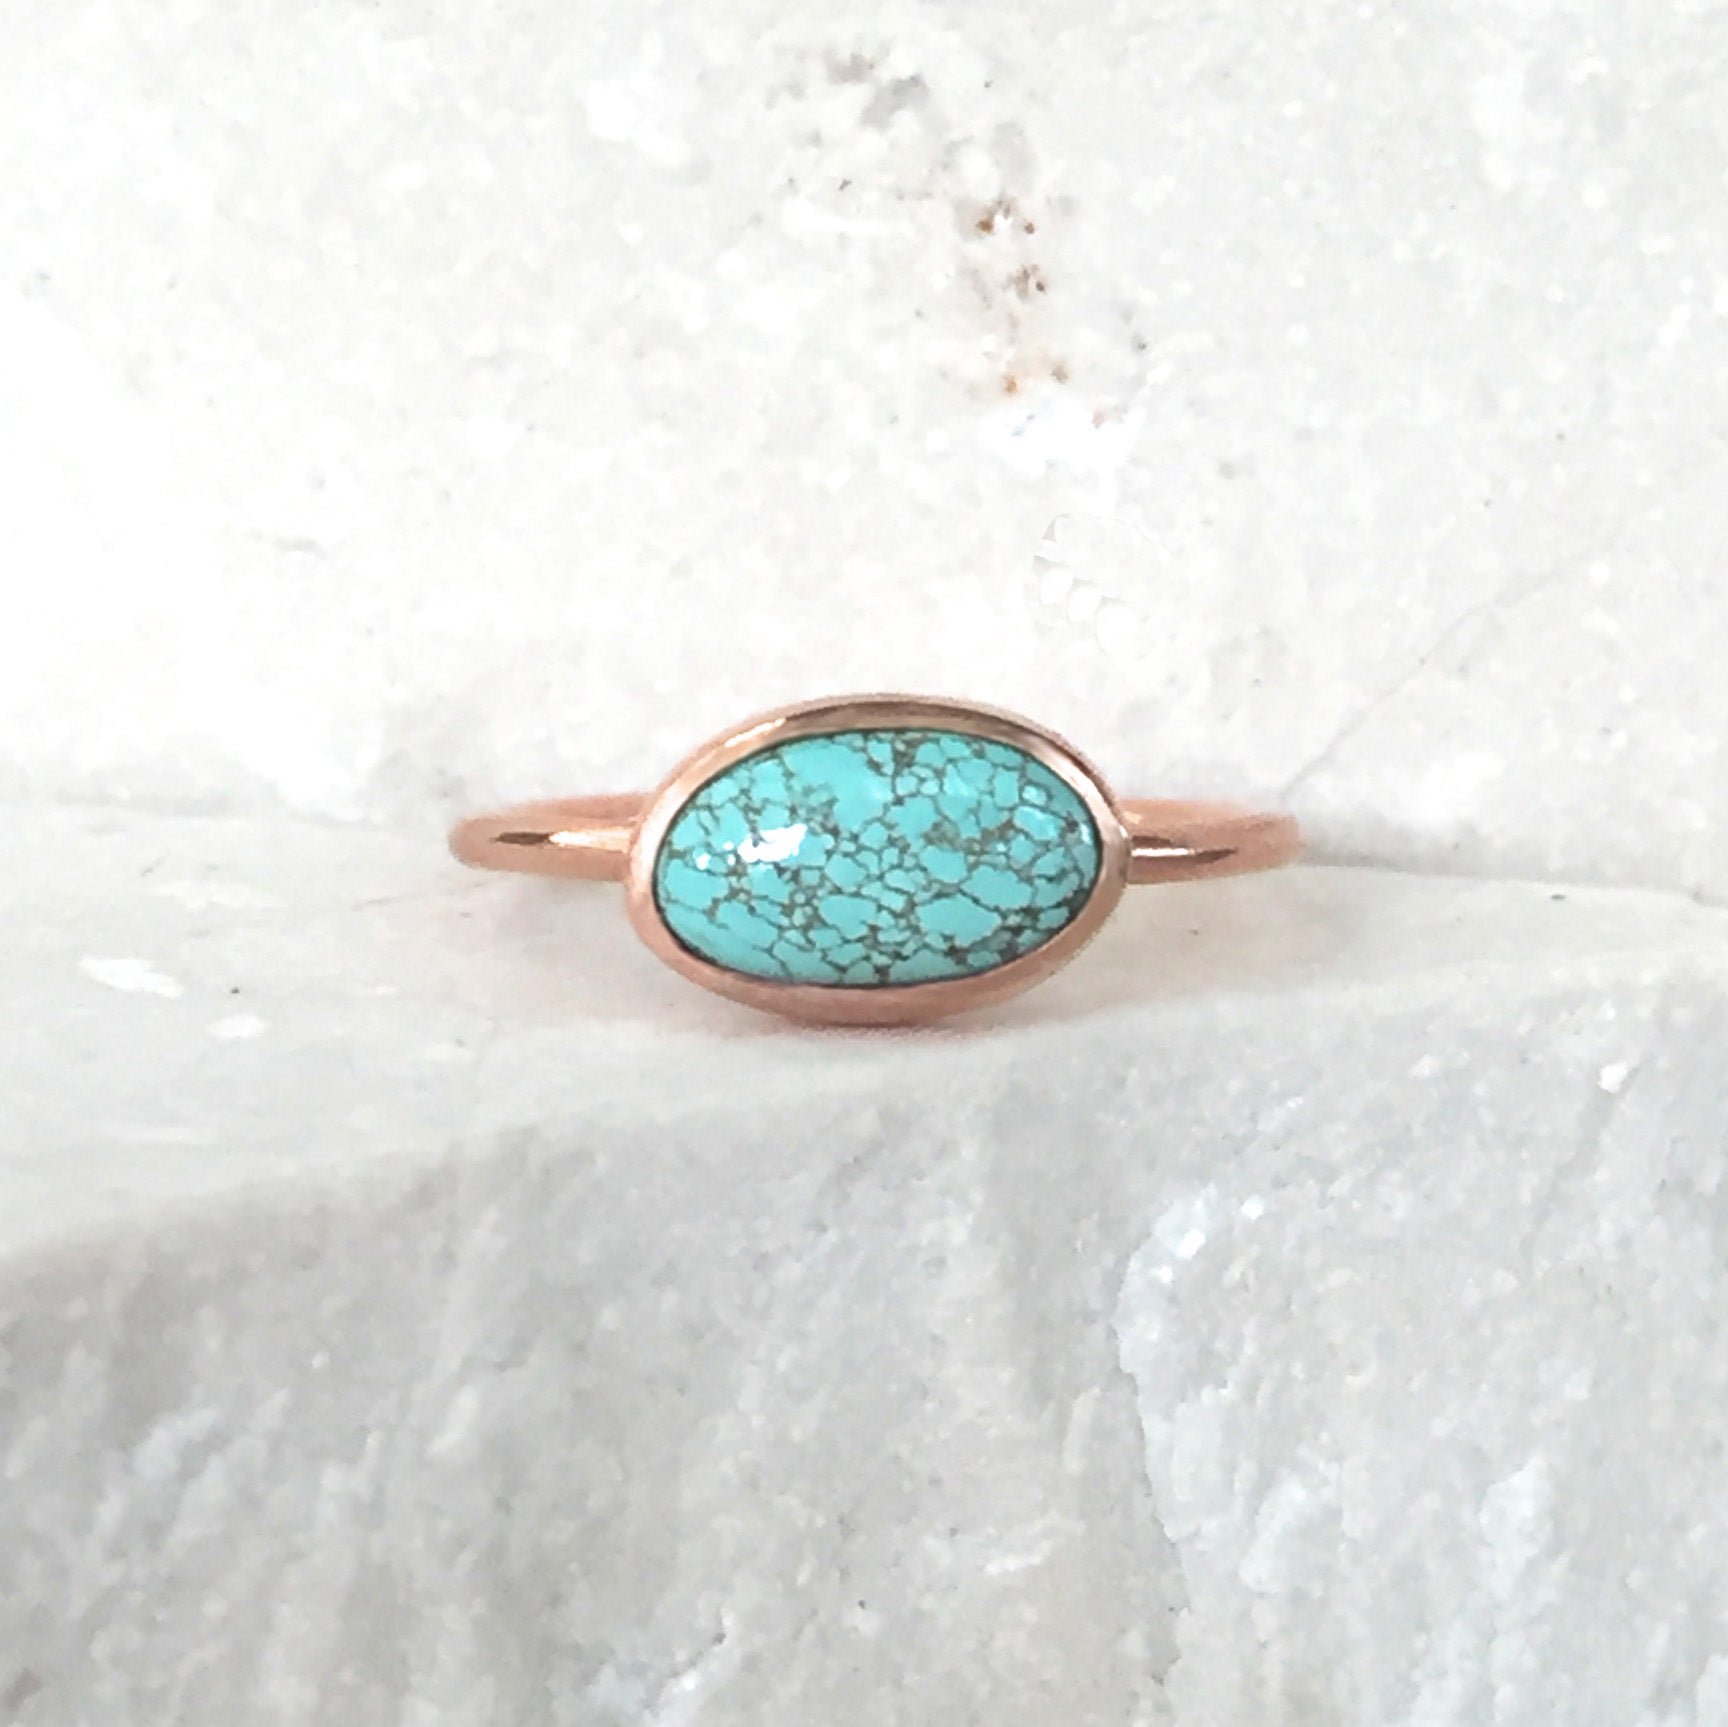 turquoise gold stone product number of reece rose jewelry salinas ring rings solid no image size